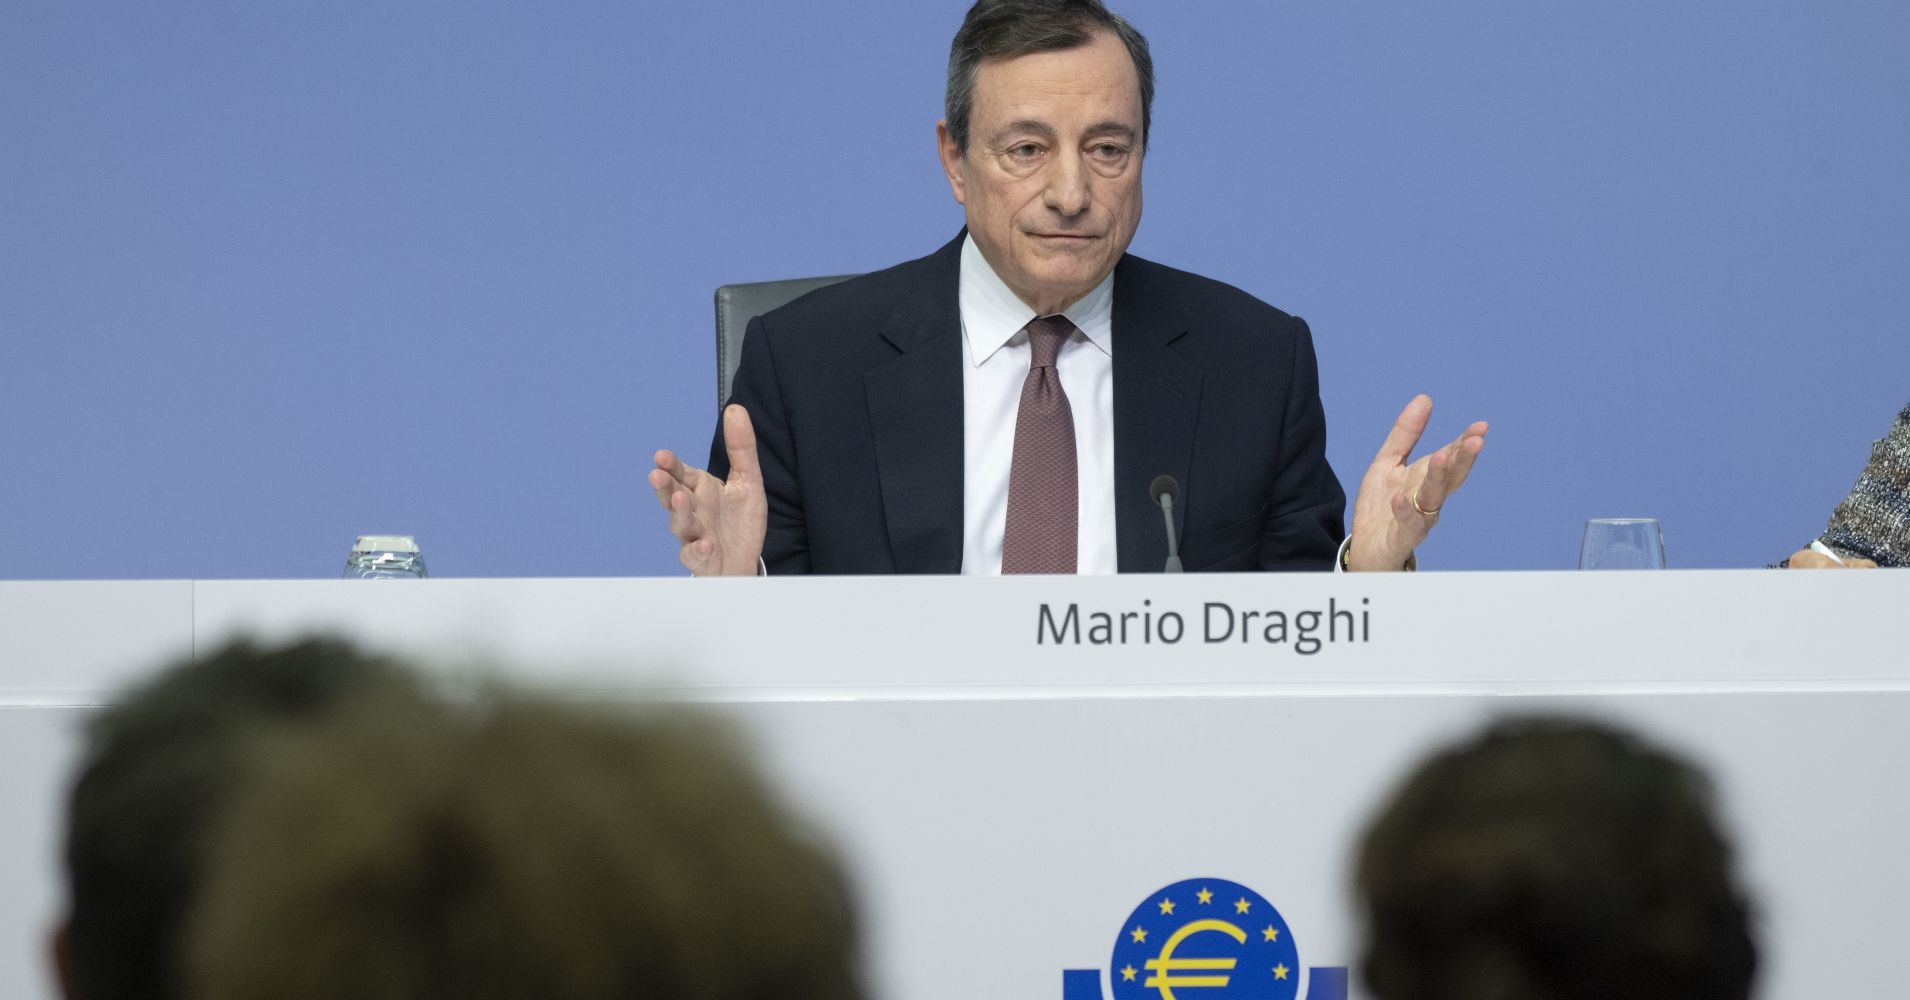 ECB rate decision, Brexit summit and trade in focus